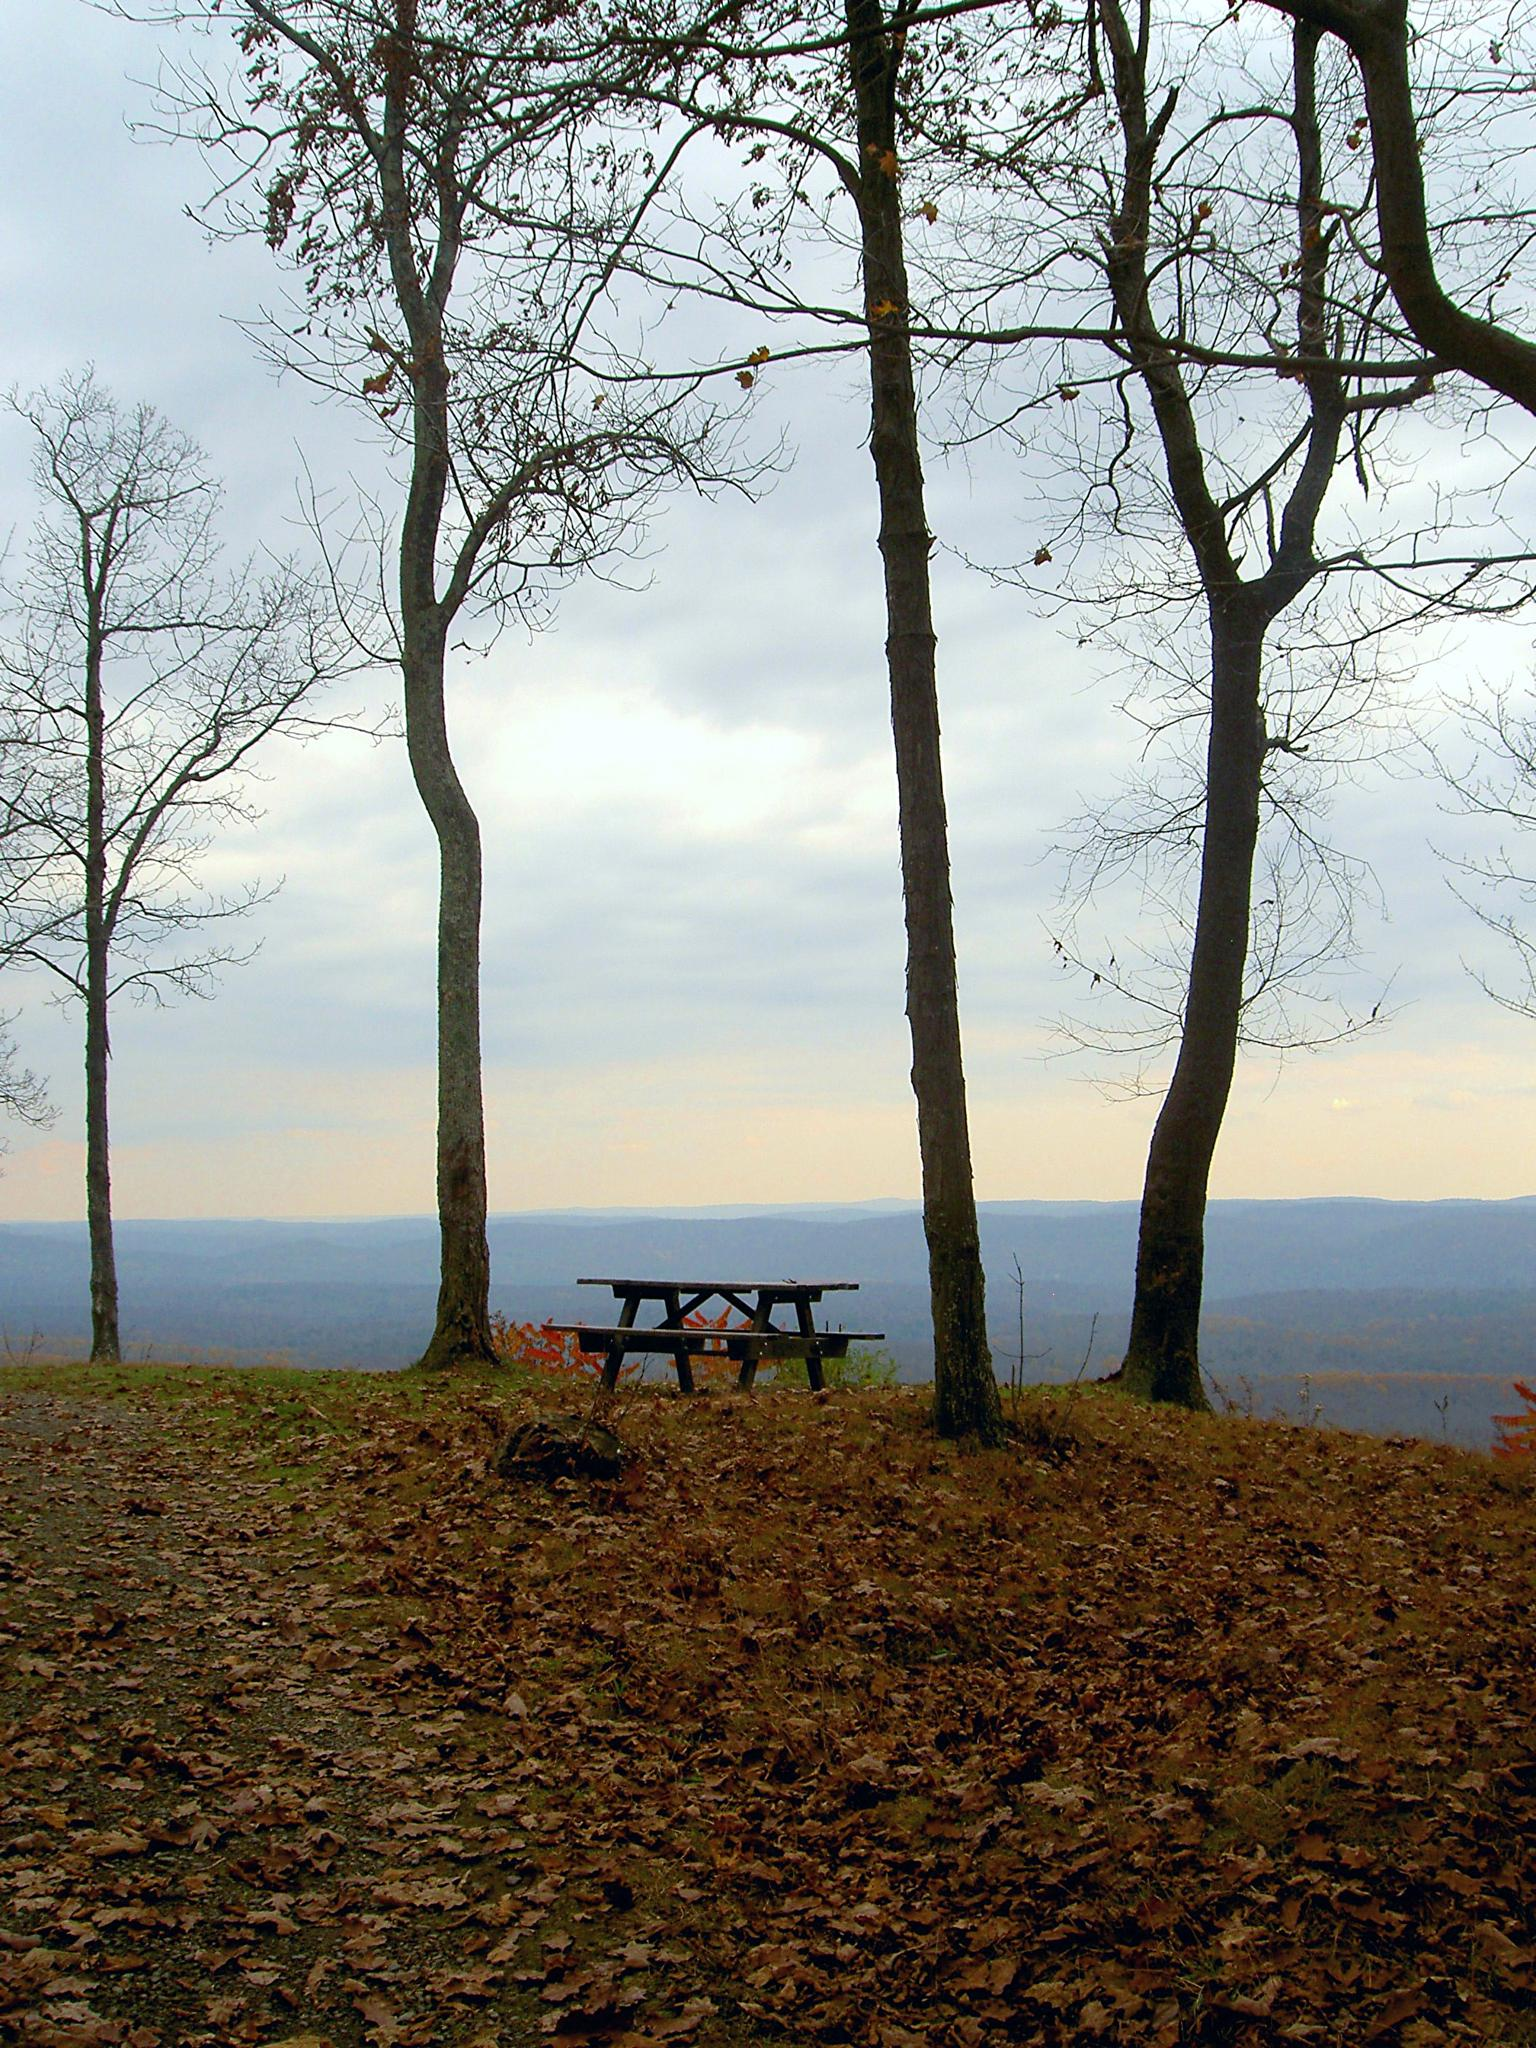 The Lonliest Picnic Table by Terri Scache Harris